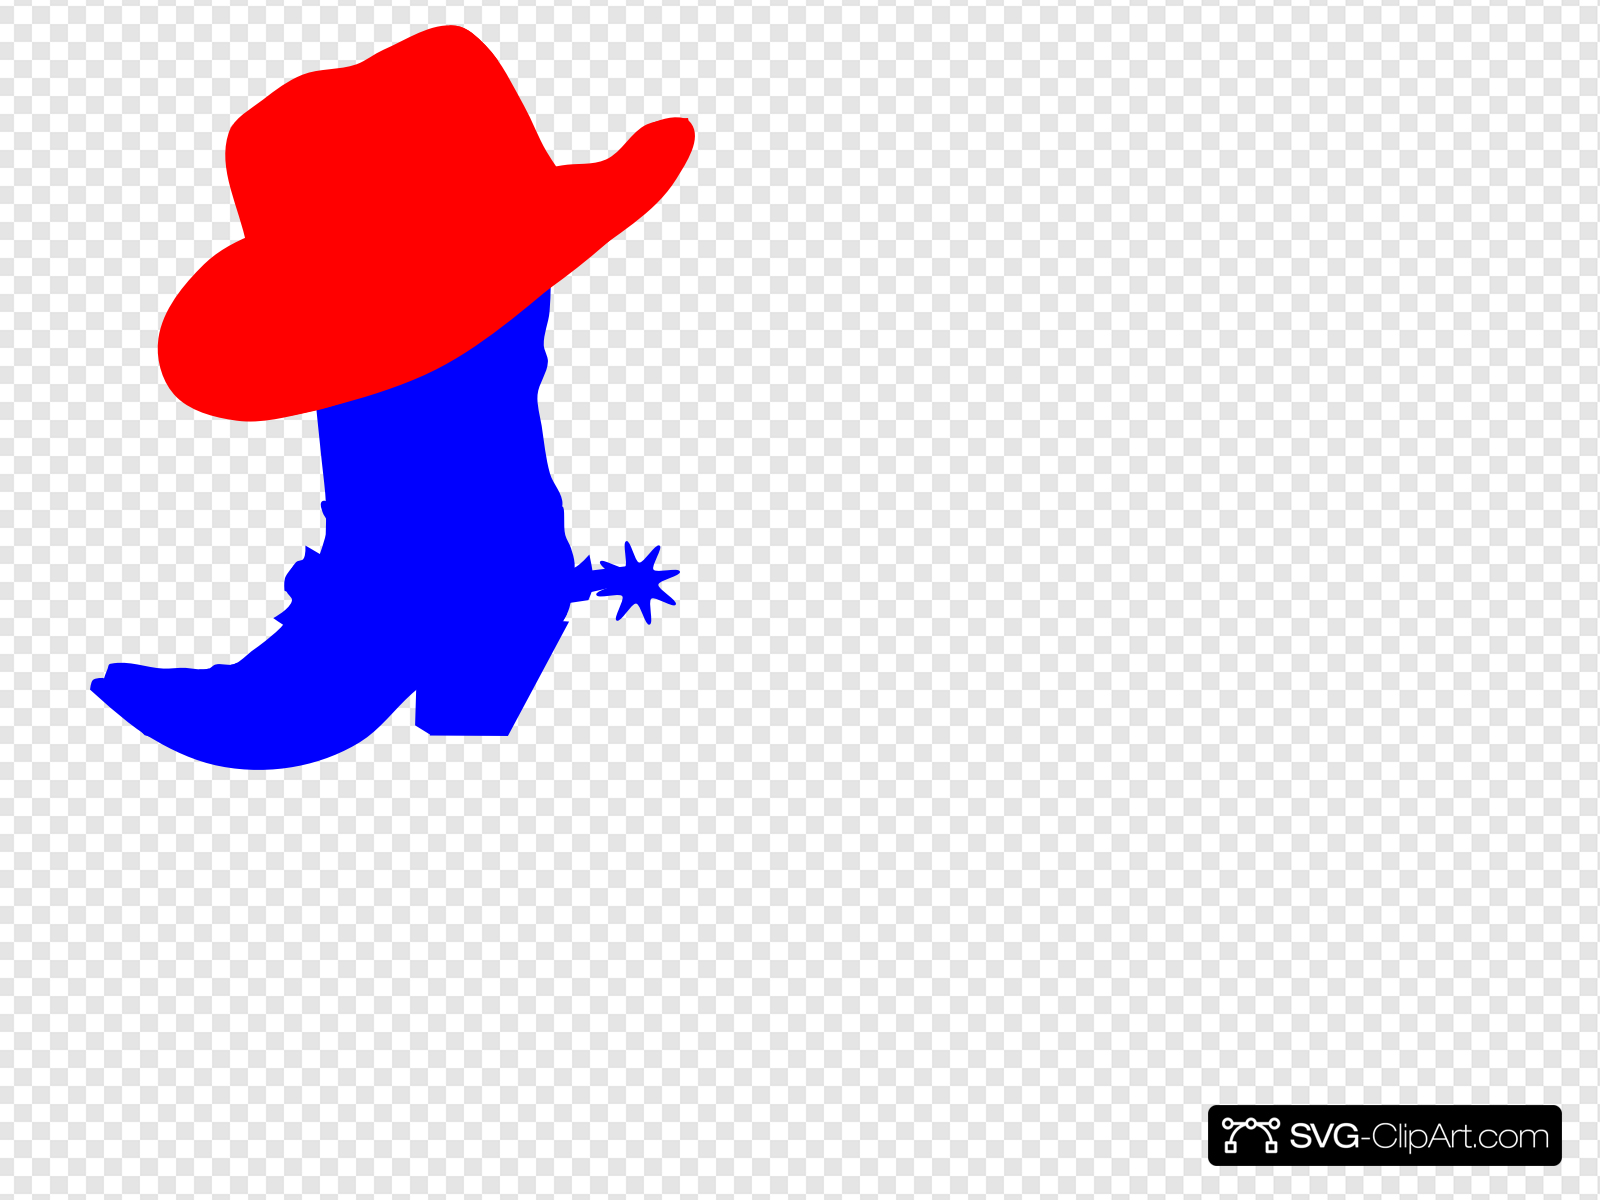 Red Cowboy Hat Clip art, Icon and SVG.